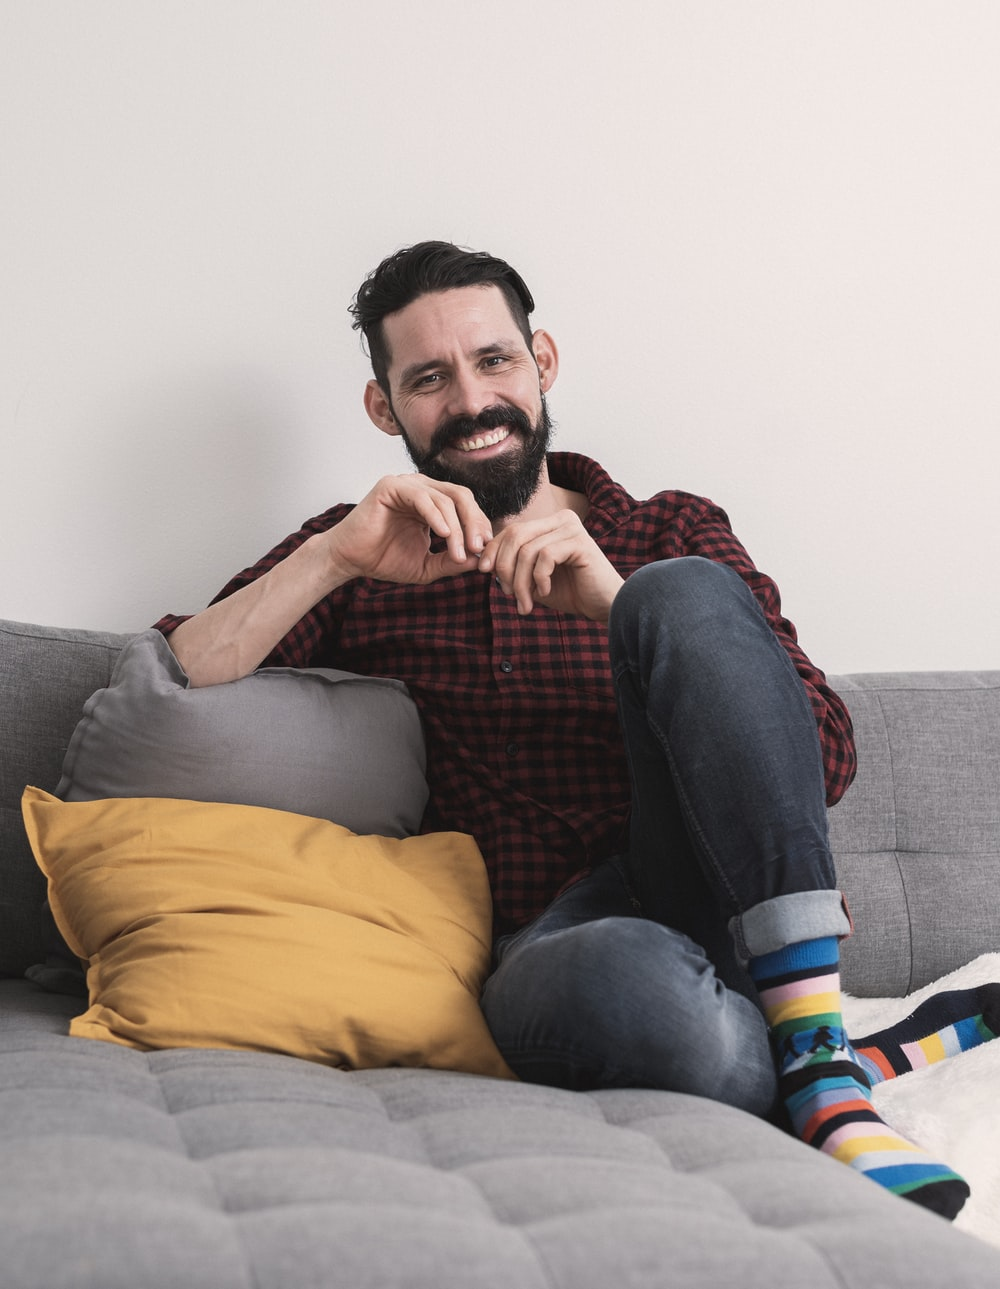 man in gray crew neck t-shirt and blue denim jeans sitting on gray sofa